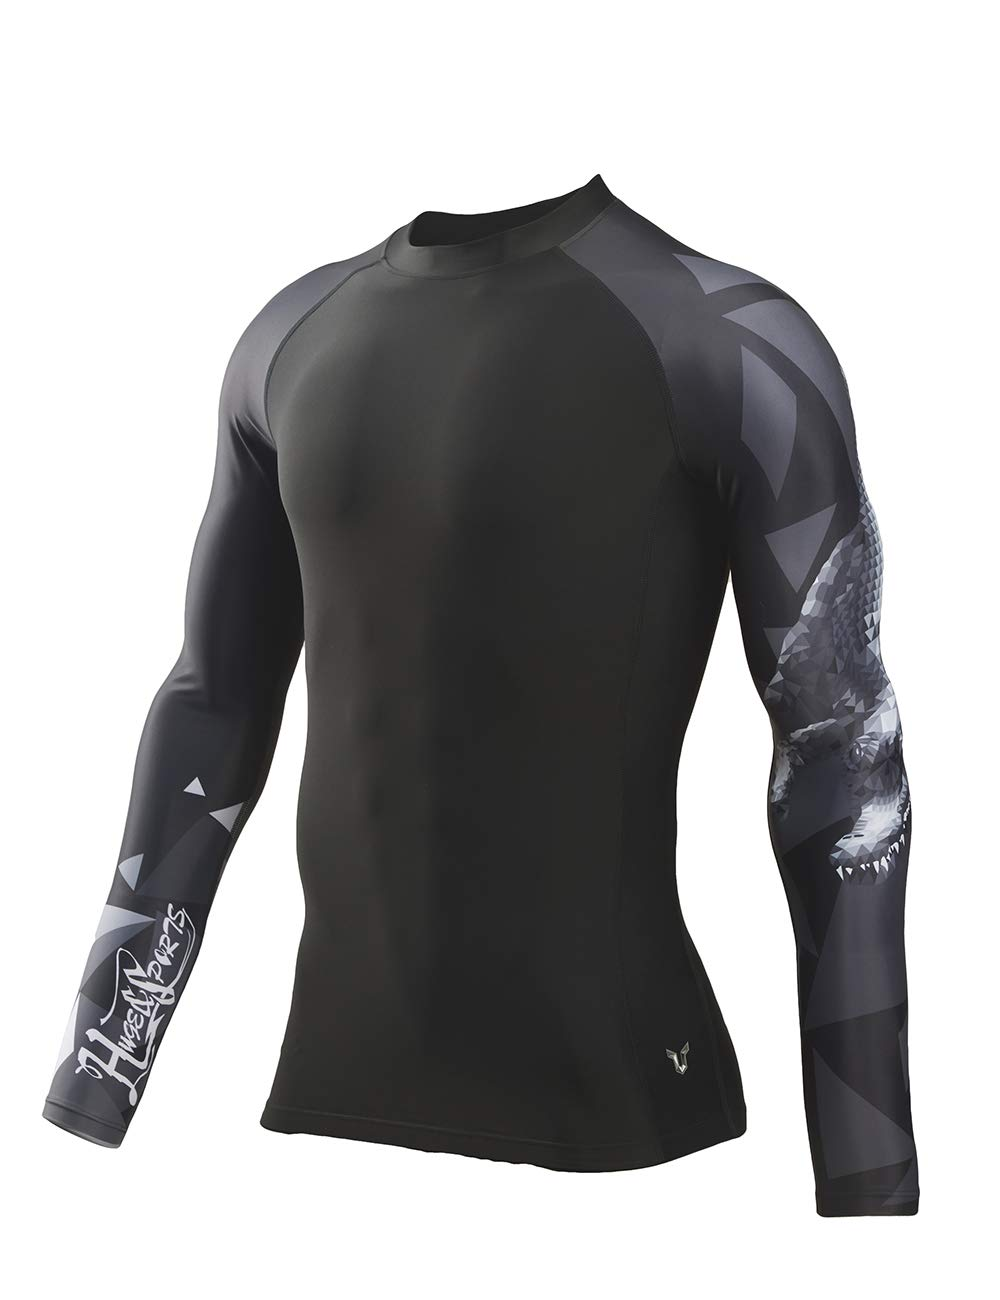 HUGE SPORTS Wildling Series UV Protection Quick Dry Compression Rash Guard(Alligator,2XL) by HUGE SPORTS